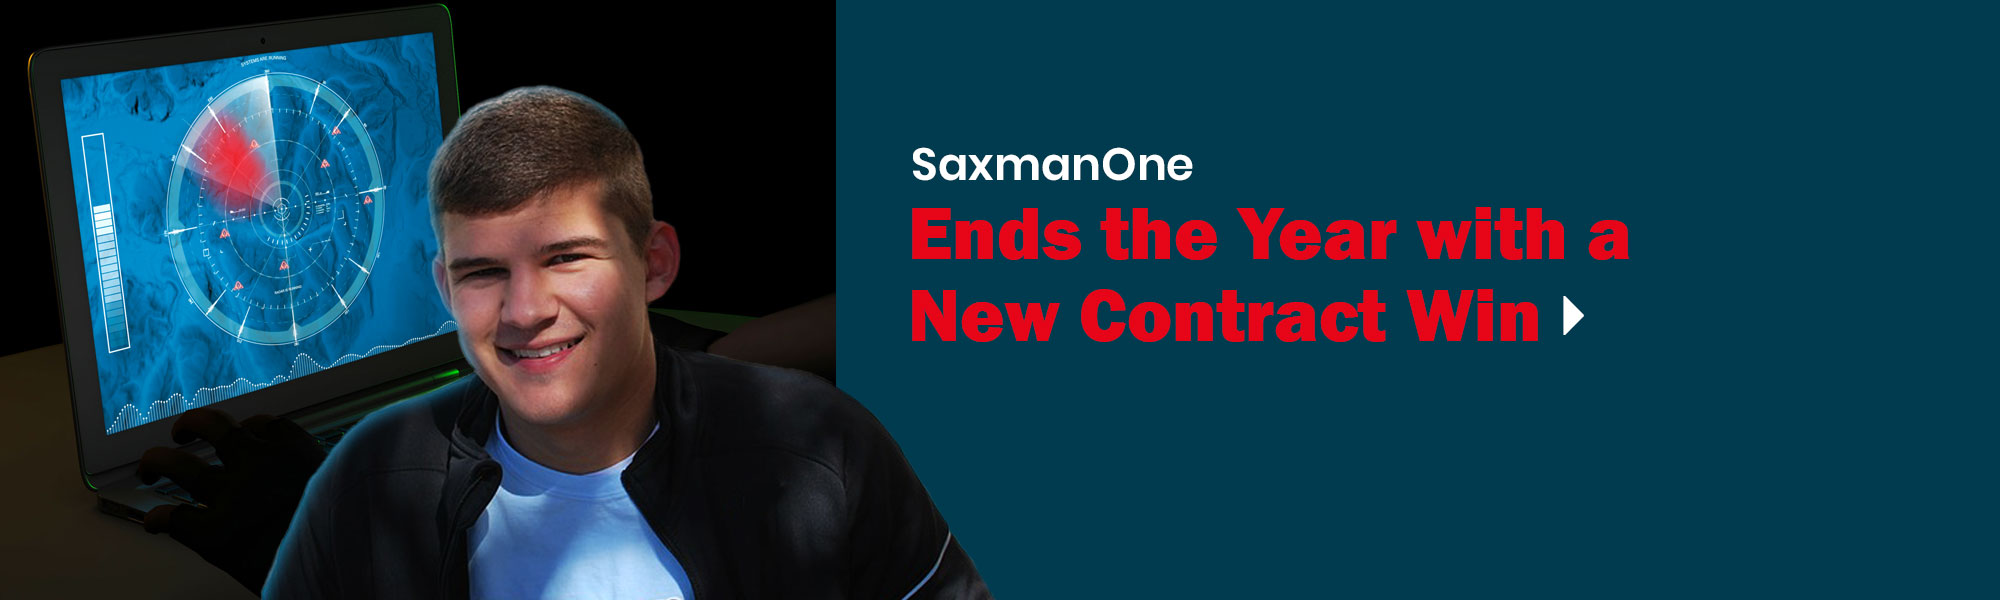 SaxmanOne Ends the Year with a New Contract Win